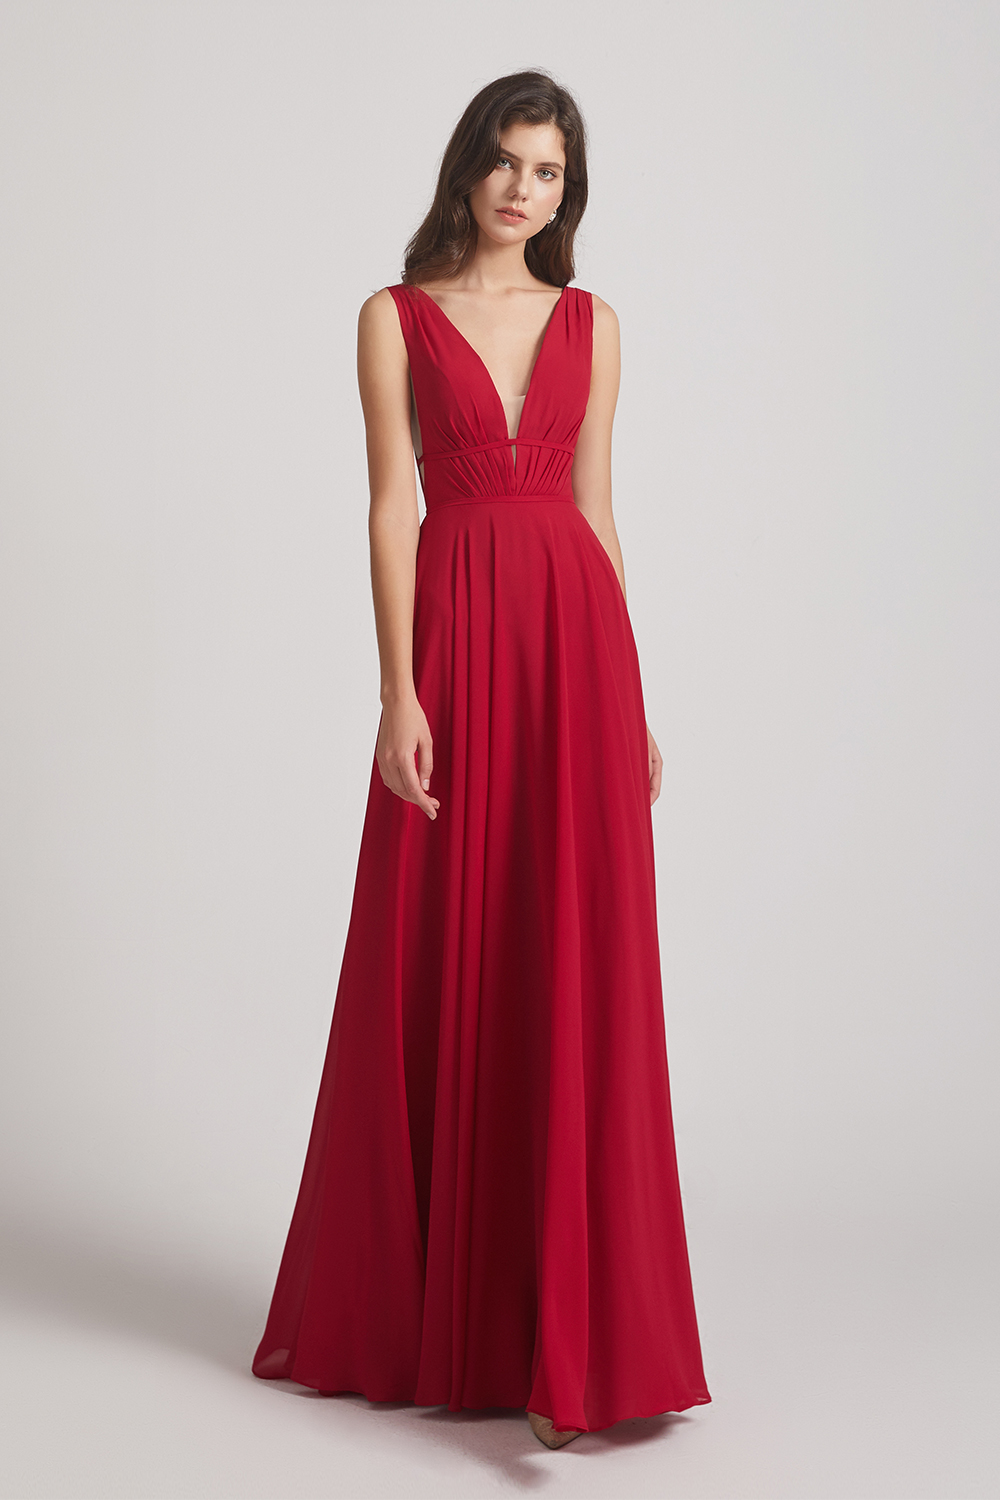 Top 5 A-line Bridesmaid Dresses from Alfabridal